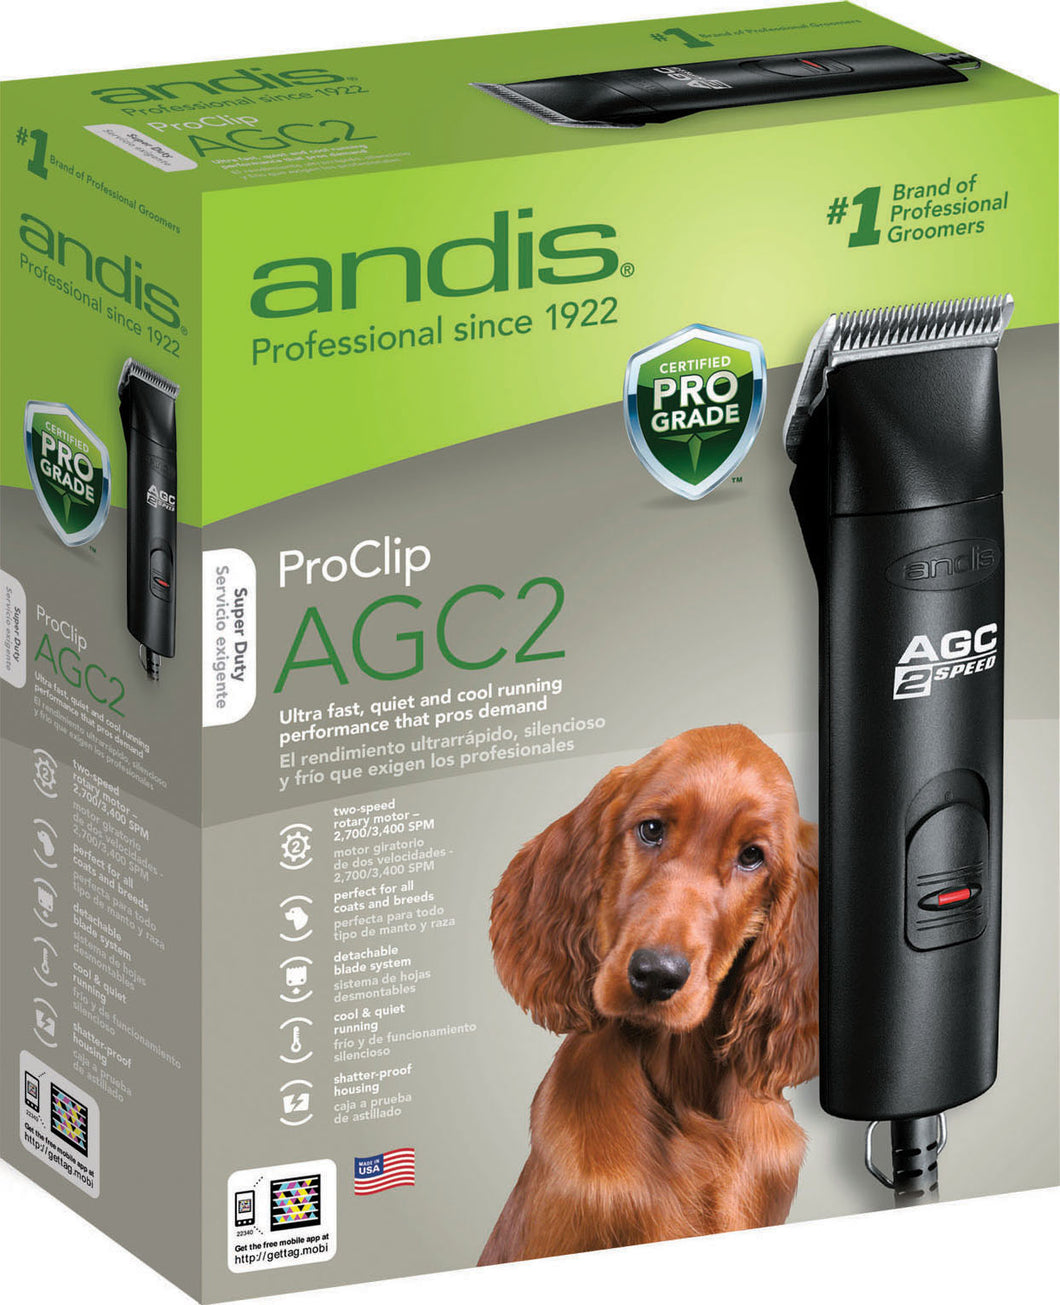 Agc2 2 Speed Professional Animal Clipper